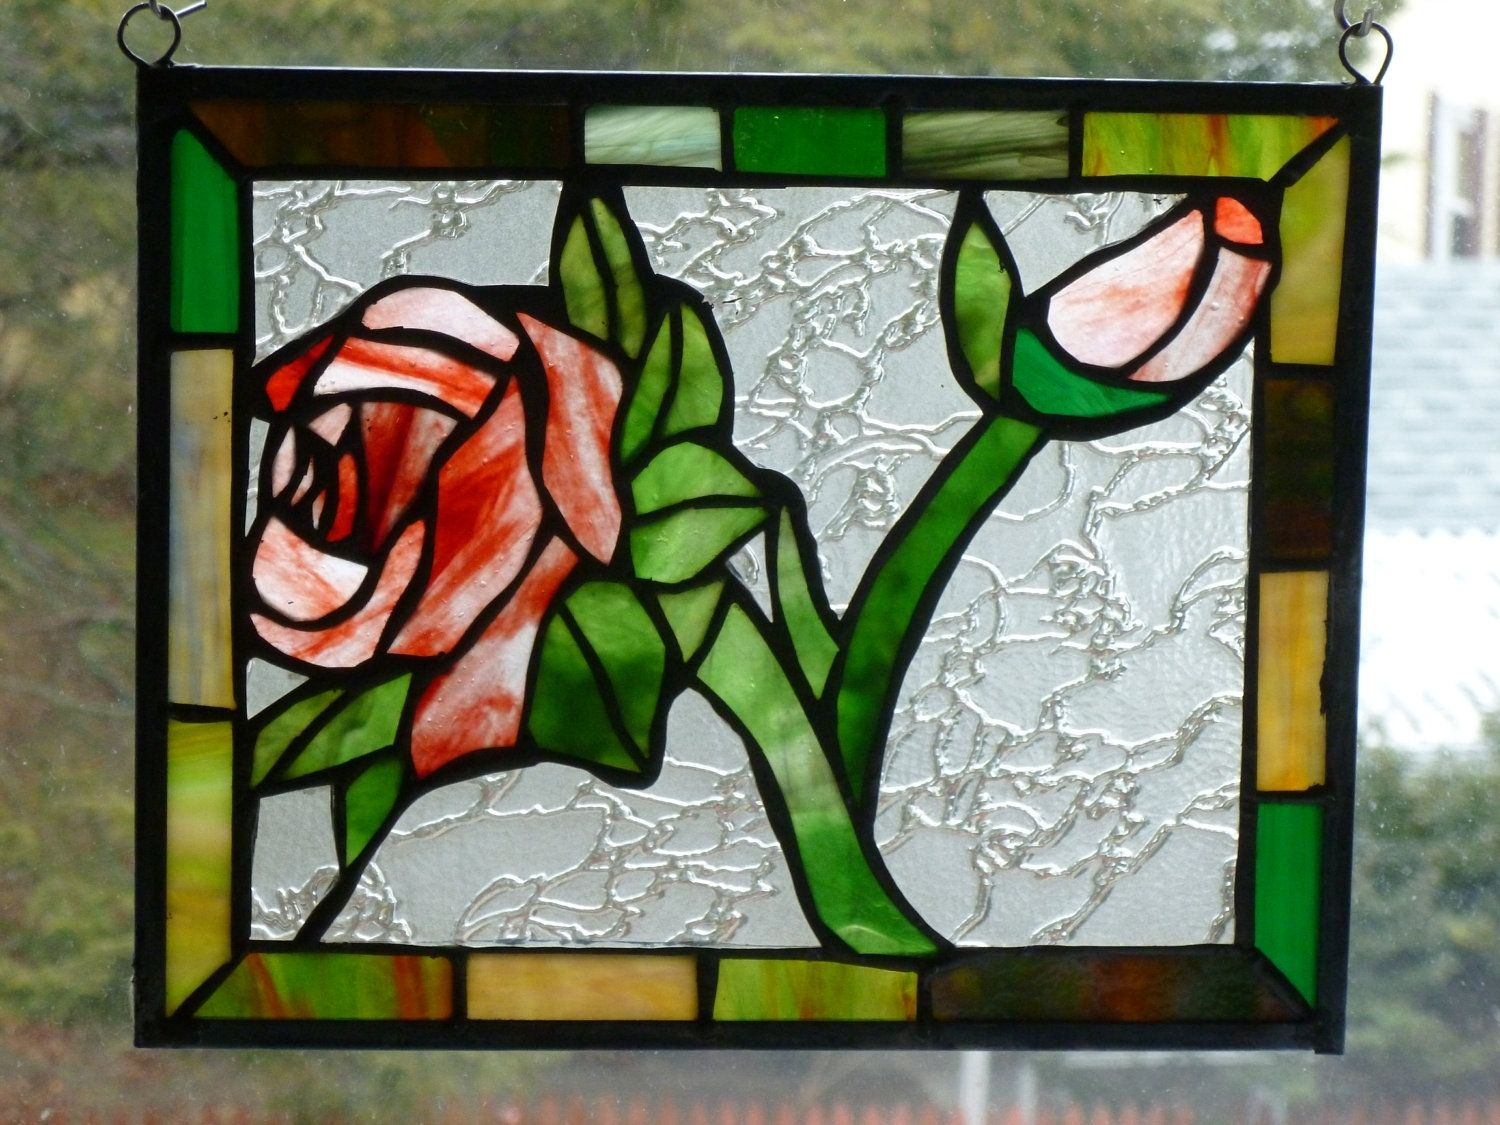 Custom stained glass custommade red rose stained glass panel with green and brown border eventelaan Gallery